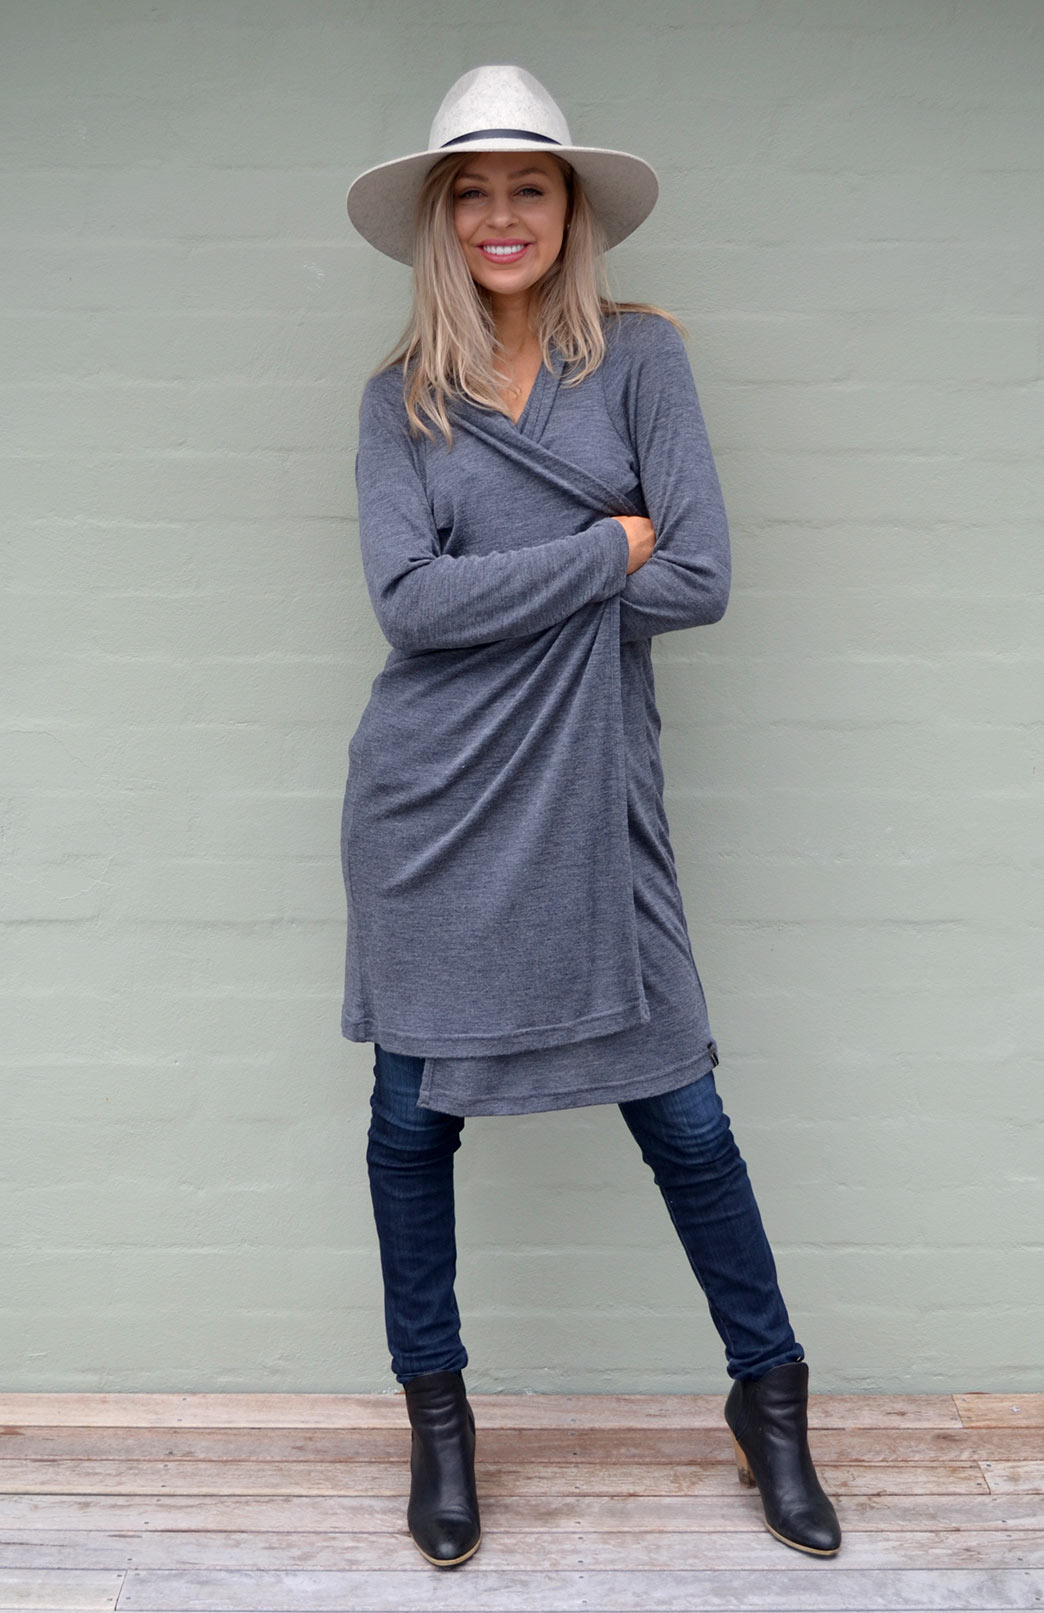 Long Drape Cardigan - Women's Knee Length Grey Marl Merino Wool Waterfall Cardigan - Smitten Merino Tasmania Australia